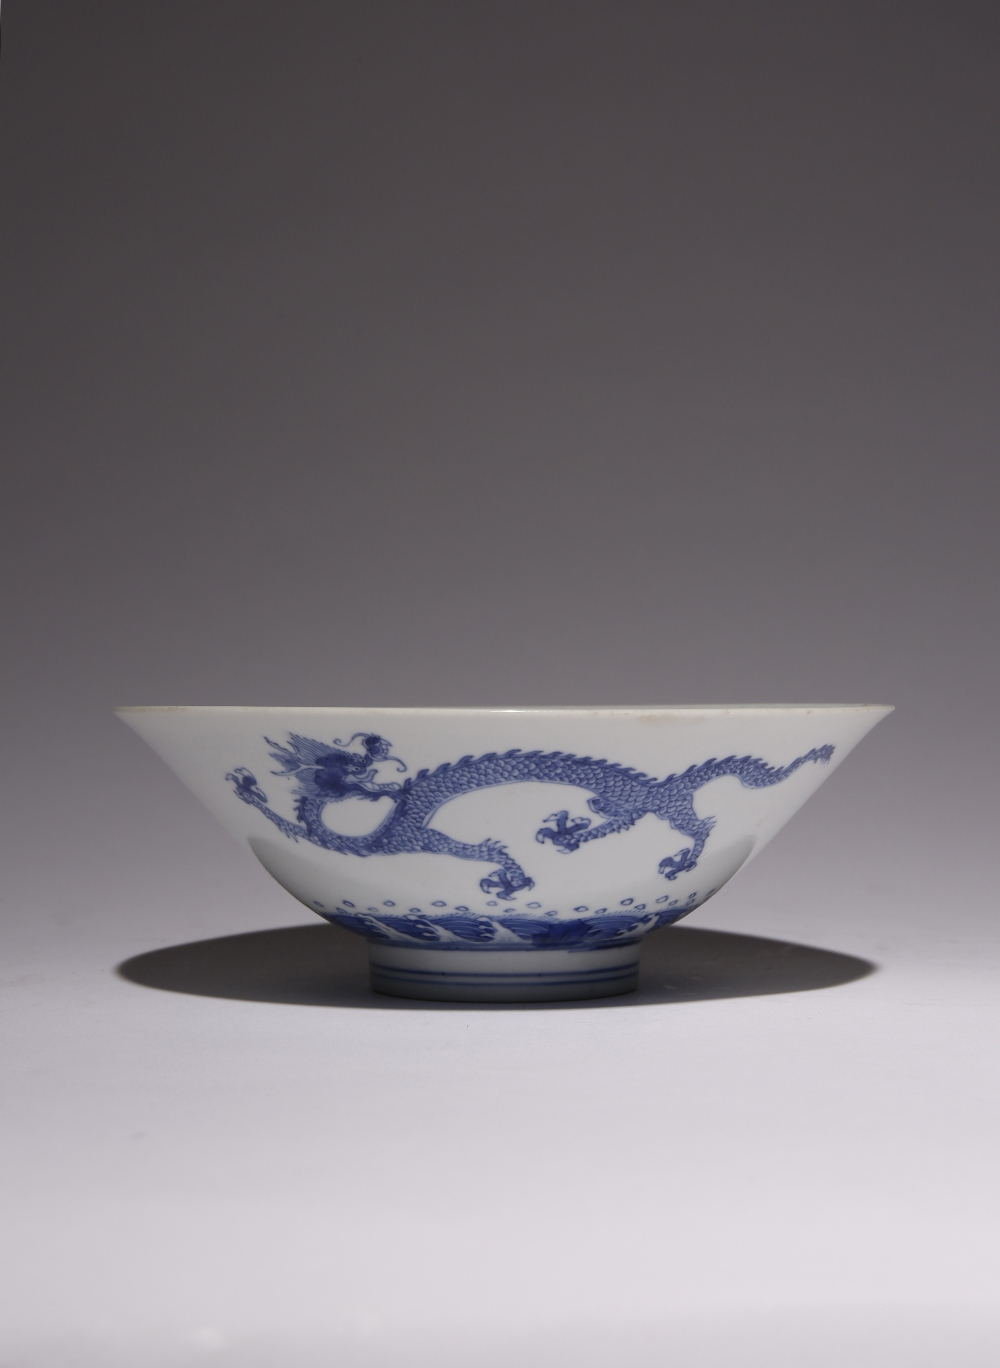 A CHINESE BLUE AND WHITE 'DRAGON' BOWL, DOULI WAN KANGXI 1662-1722 The flared body raised on a short